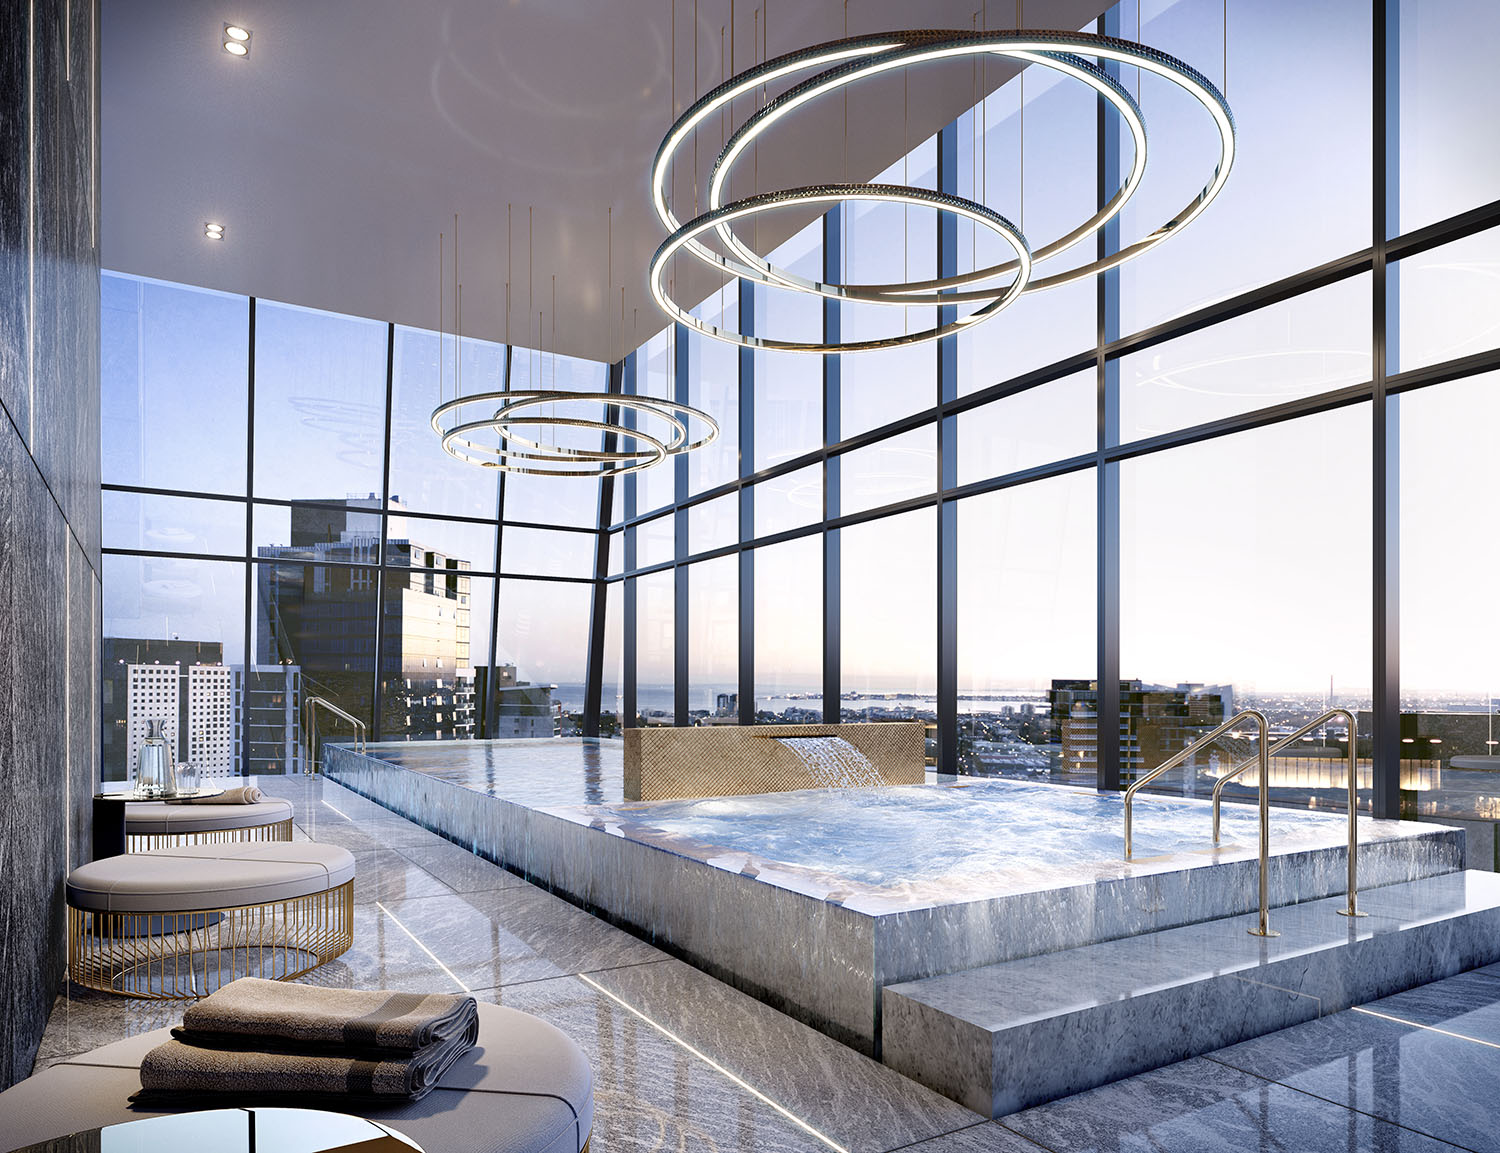 SOUTHBANK | Home Southbank, 256-266 City Rd | 60L | ~190m | Build-to-Rent